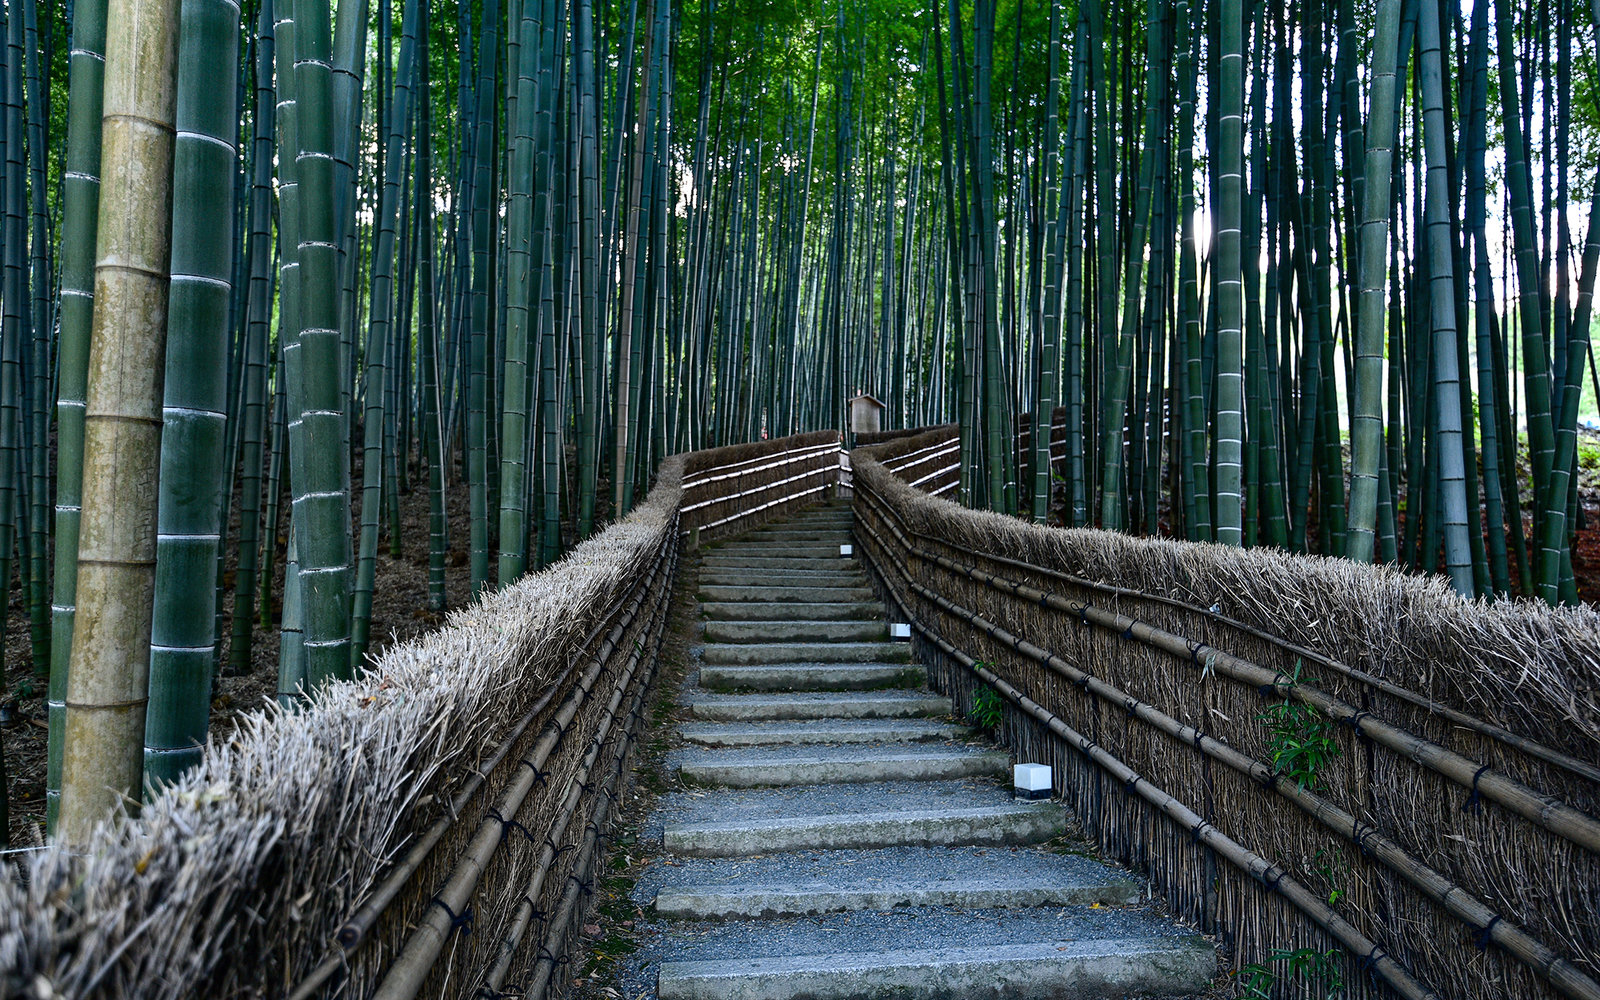 Steps leading through a bamboo woodland at Adashino Nenbutsu-ji temple, Kyoto Japan